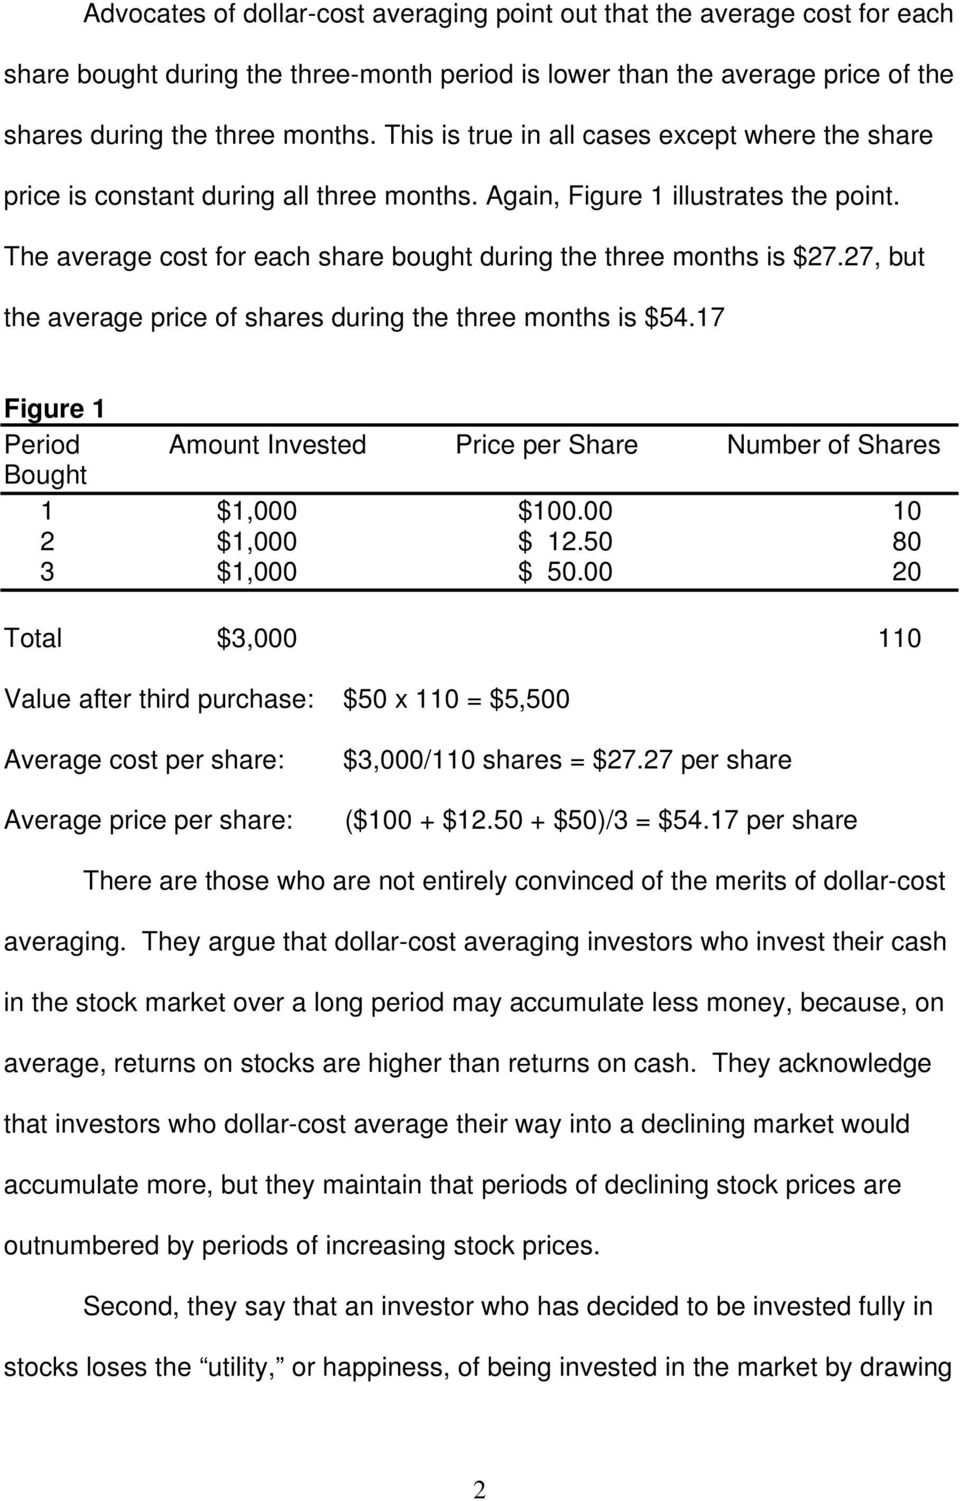 The average cost for each share bought during the three months is $27.27, but the average price of shares during the three months is $54.